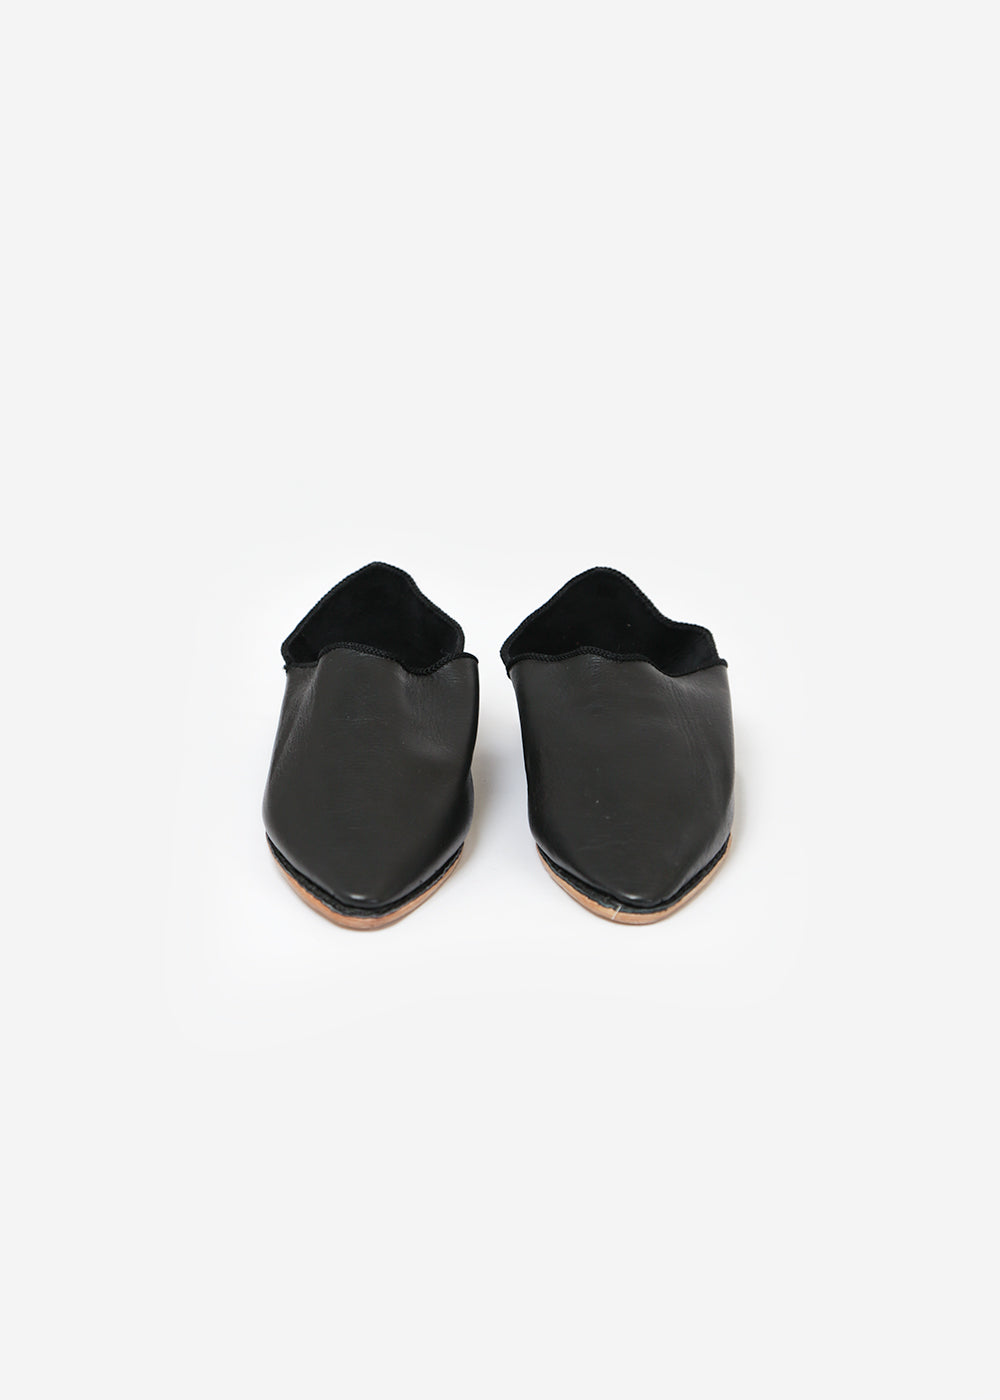 Bronze Age Black Massa Leather Glove Shoe — Shop sustainable fashion and slow fashion at New Classics Studios